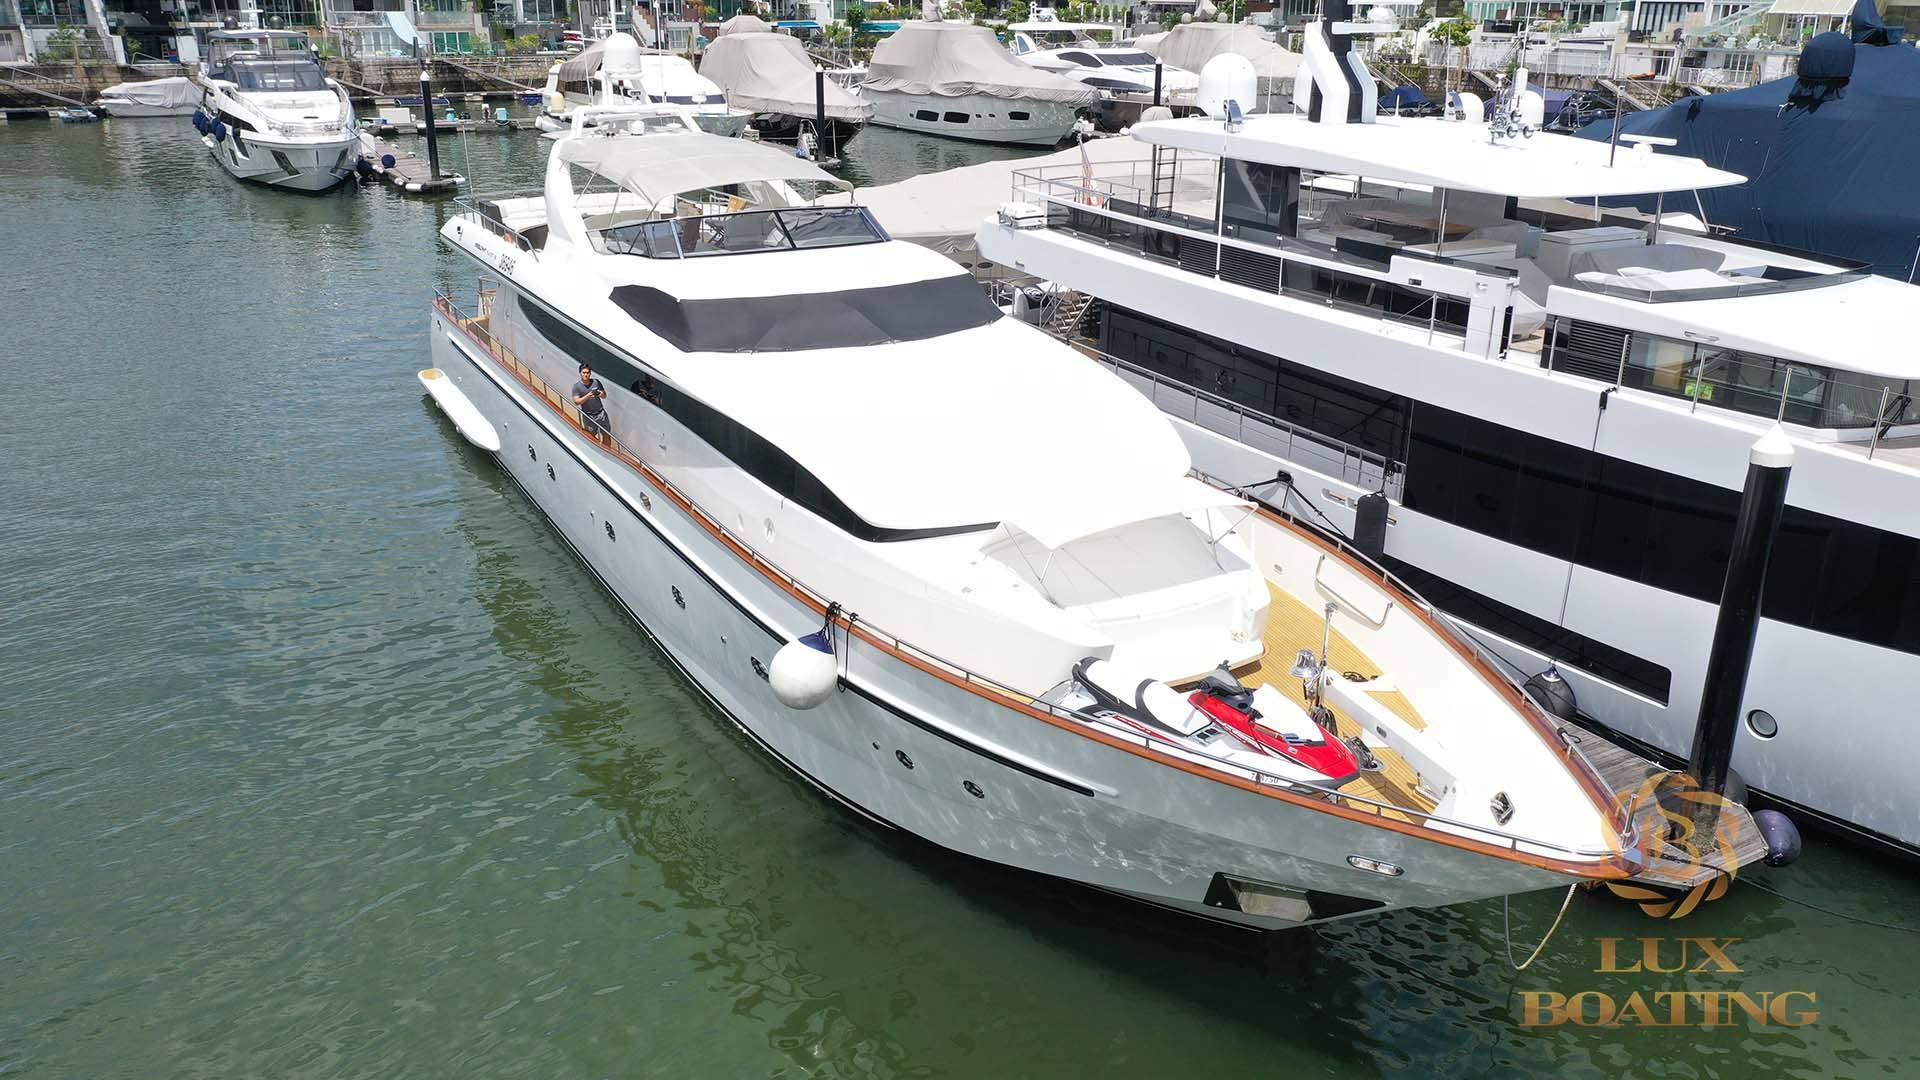 2003 VERSILCRAFT PLANET 110 (SOLD)